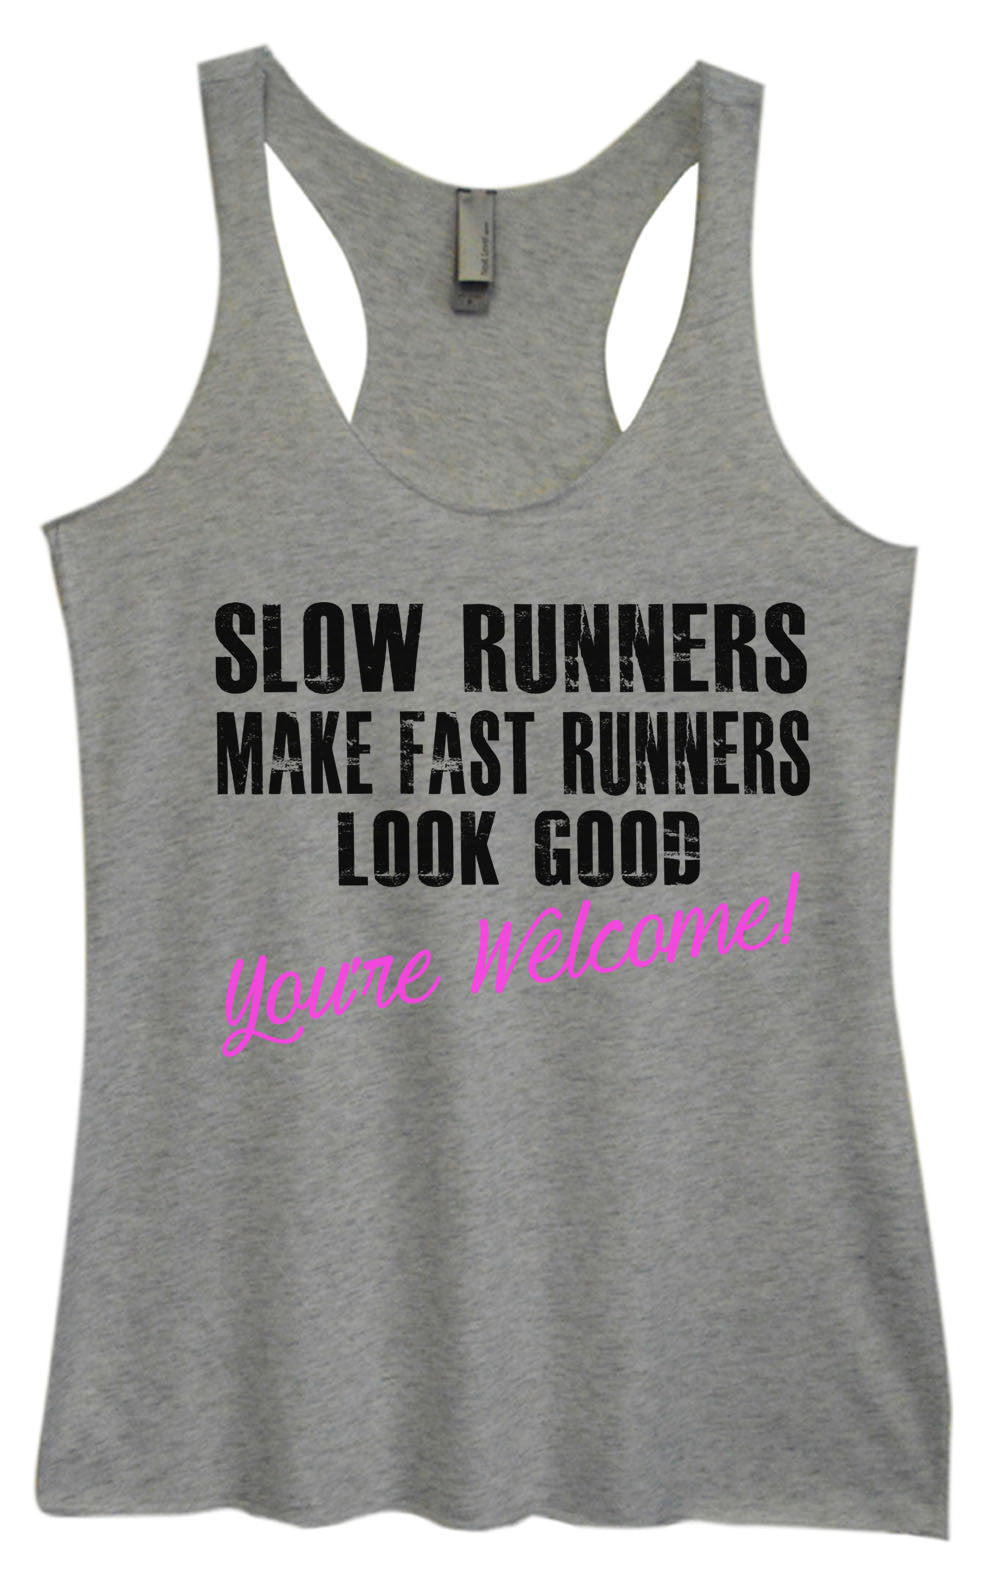 Womens Fashion Triblend Tank Top - Slow Runnres Make Fast Runners Look Good You're Welcome! - Tri-735 - Funny Shirts Tank Tops Burnouts and Triblends  - 2